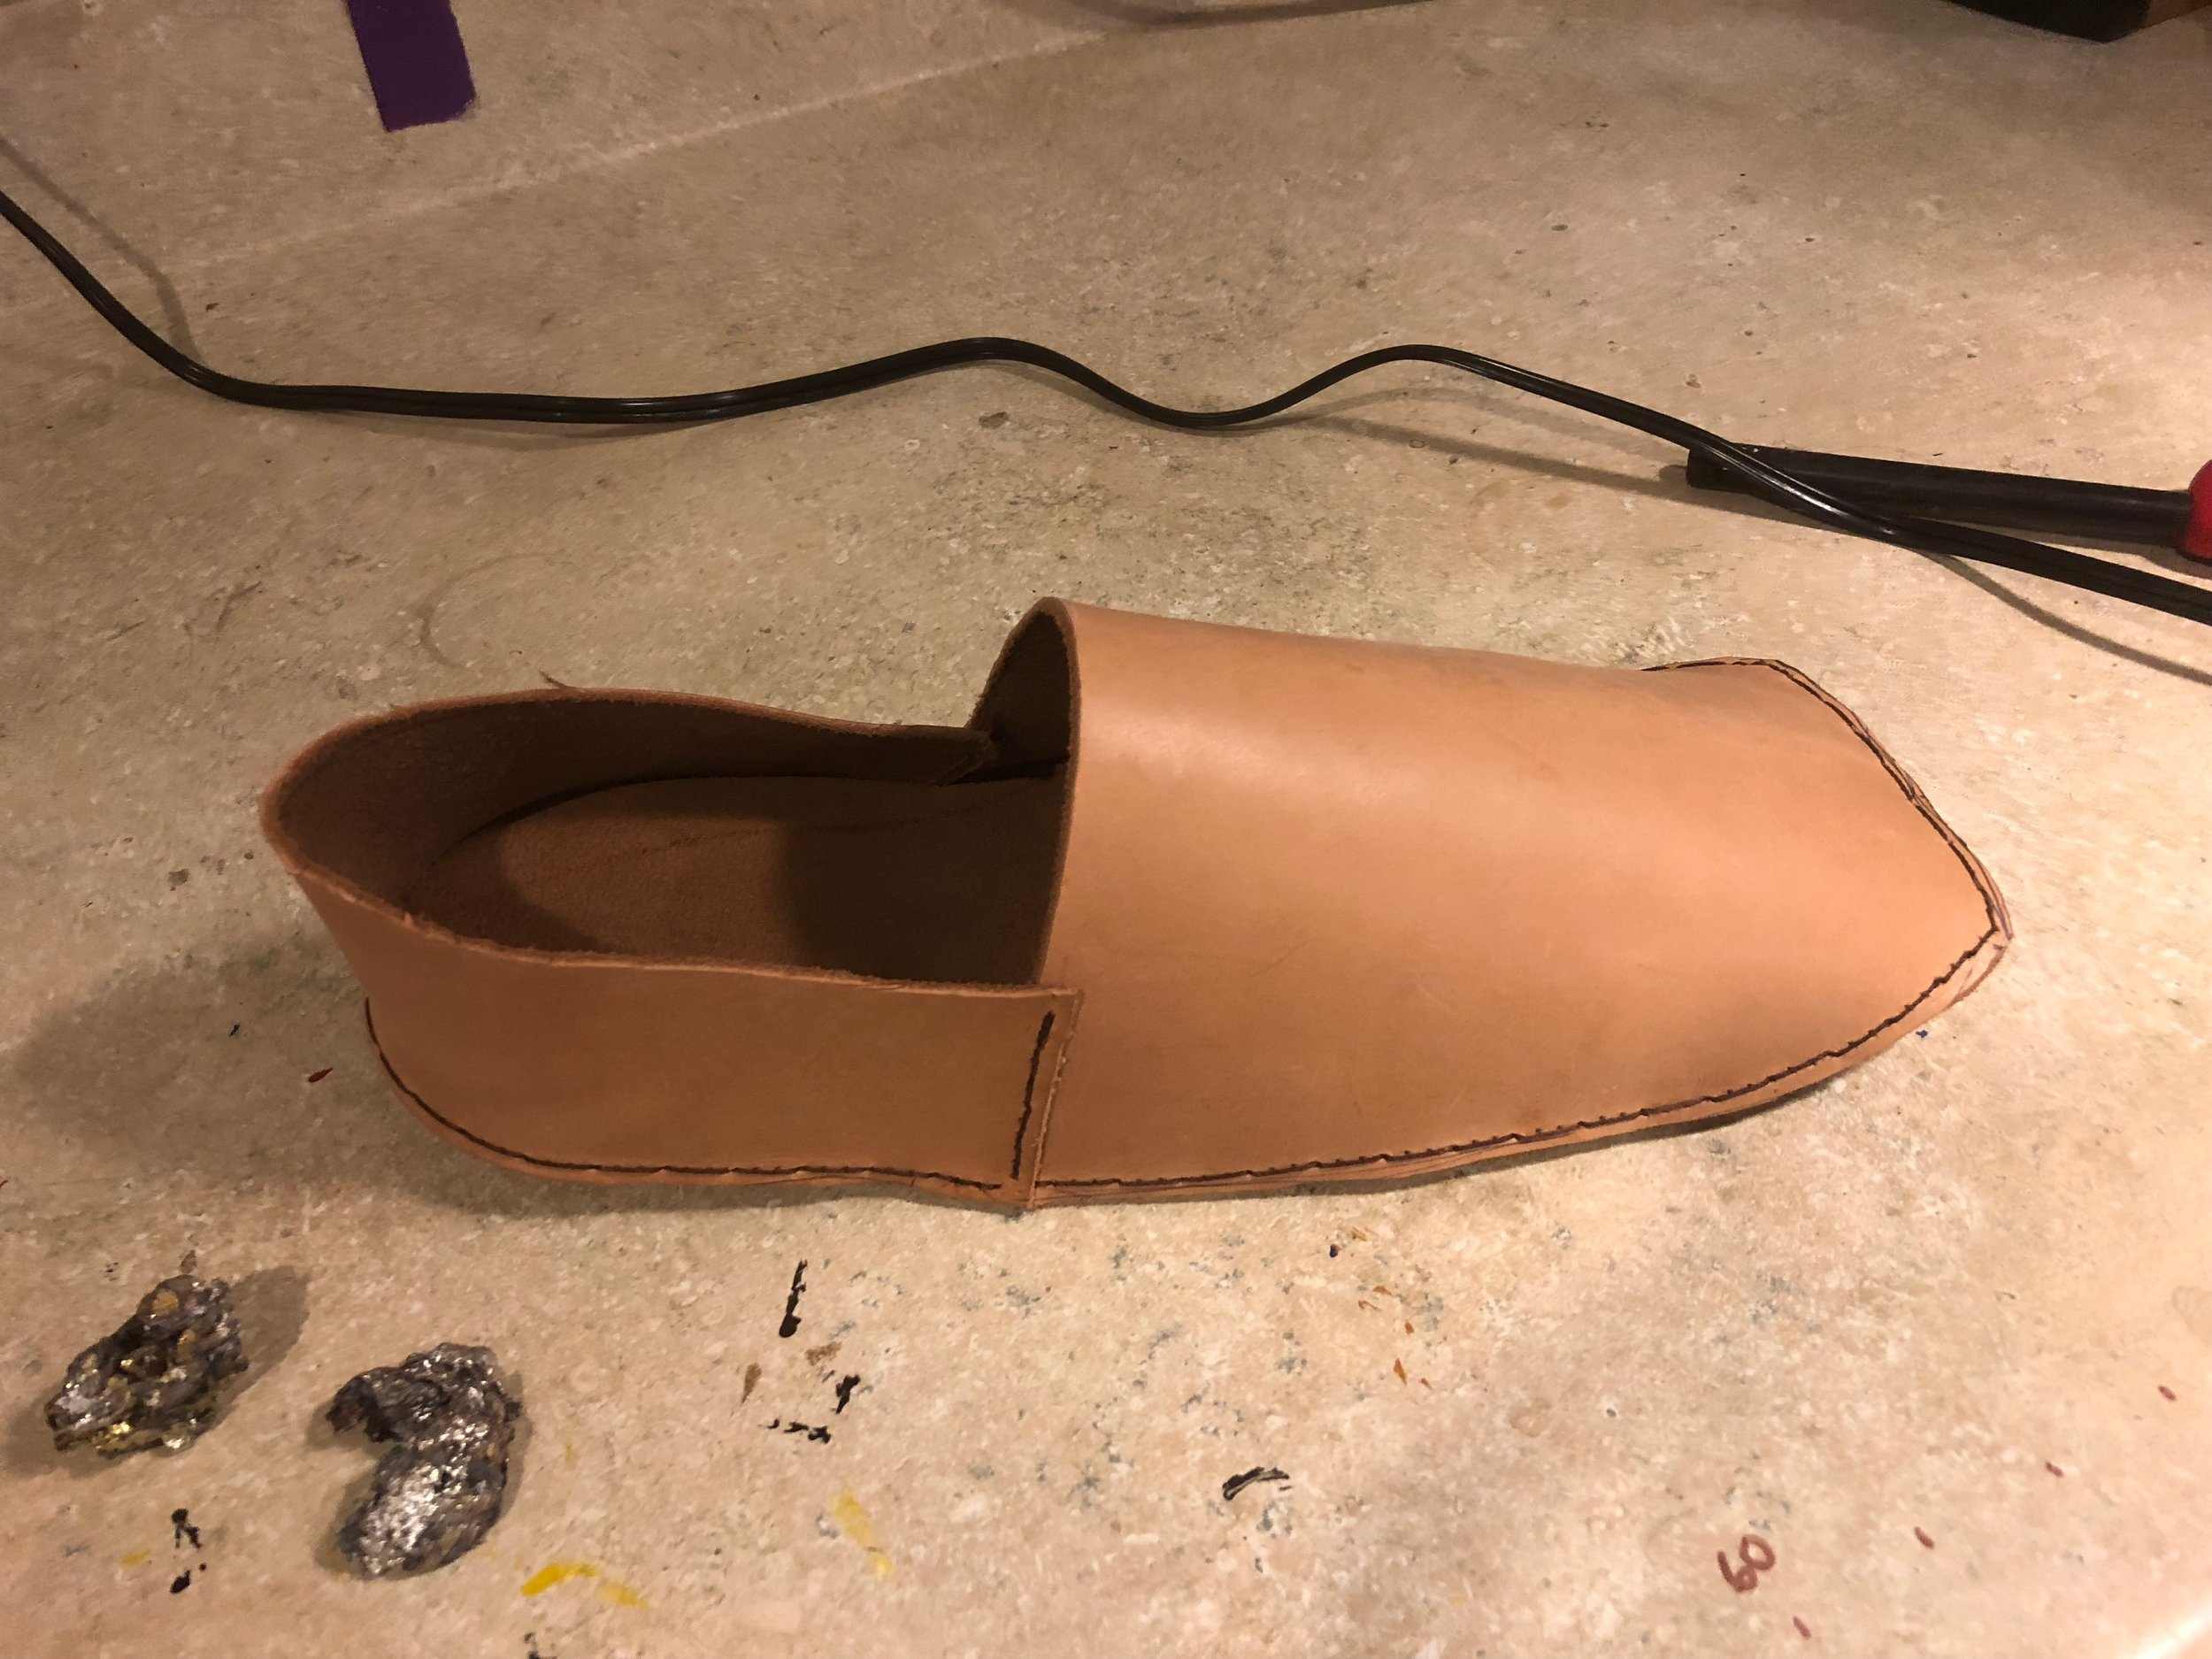 Leather German styled Shoes for the Revenge of the Stitch Garb Challenge